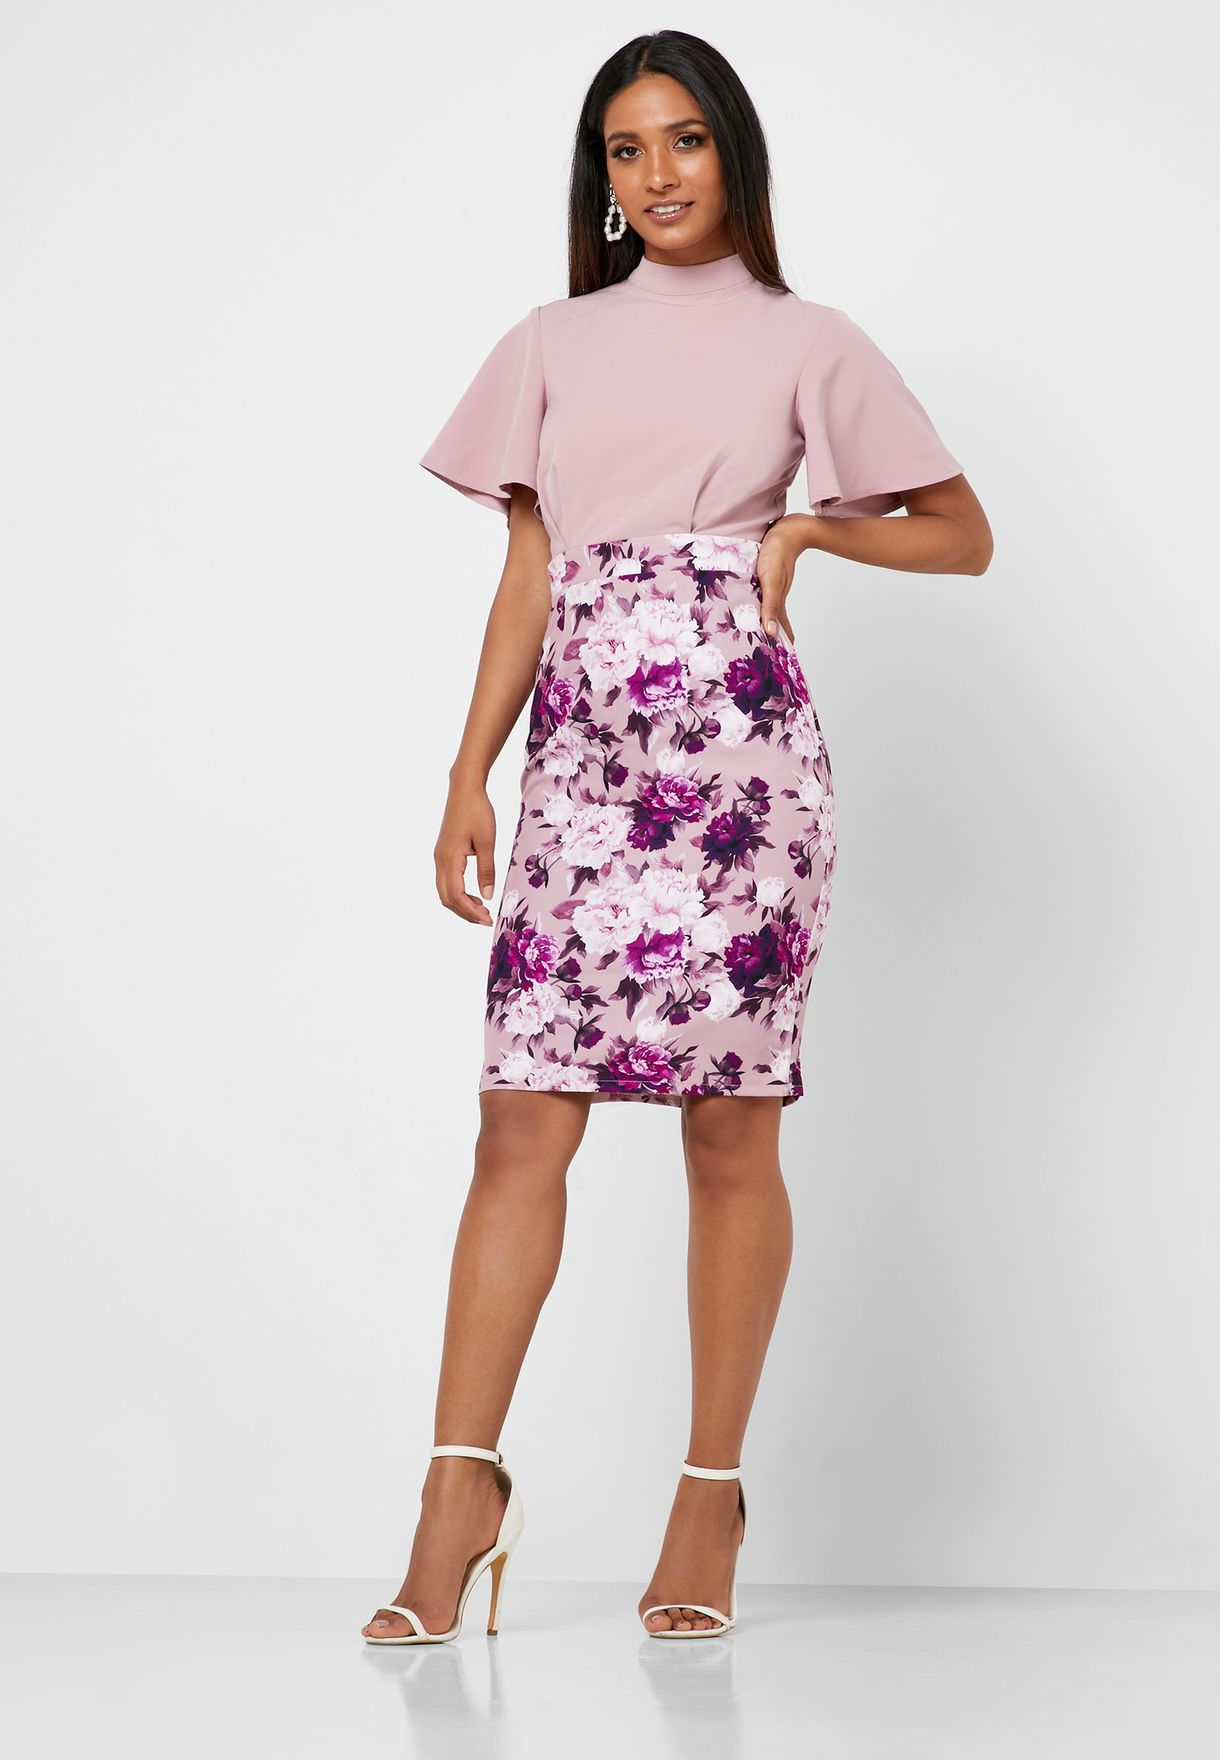 Back Cut Out Floral Print Skirt Dress